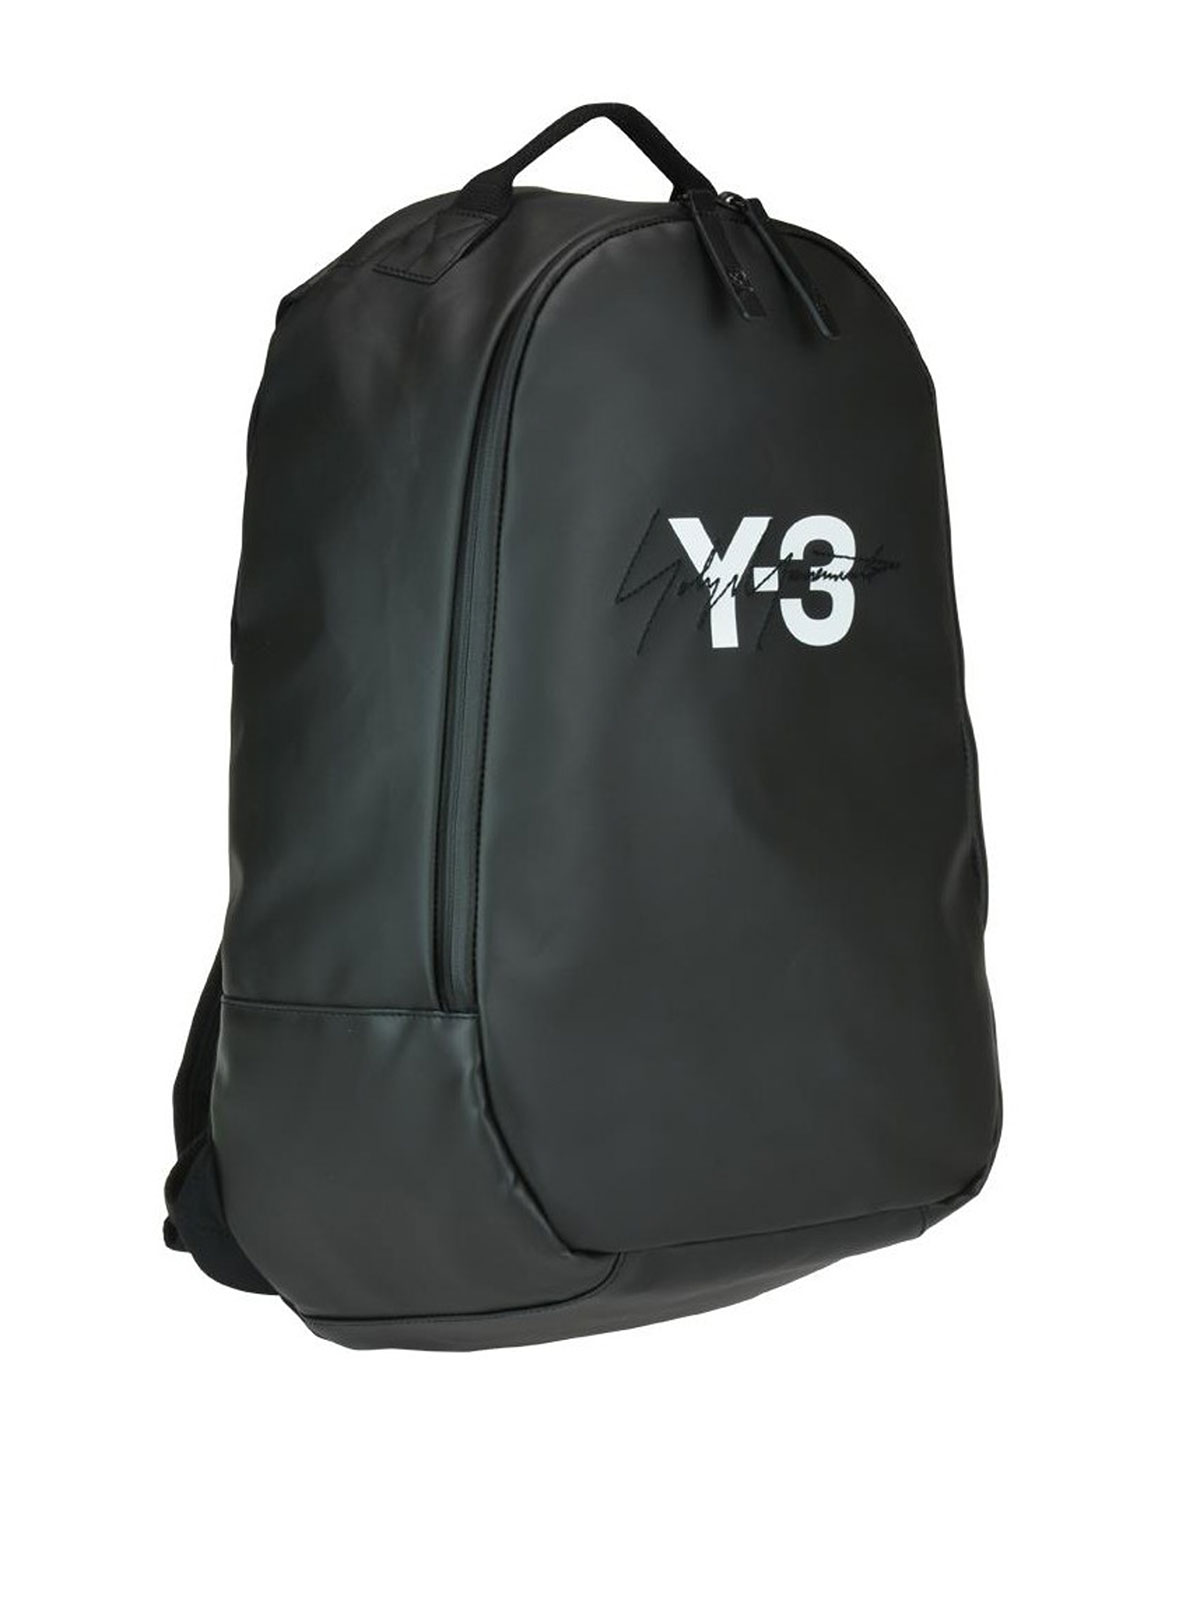 40a6fb4e9 Adidas Y-3 - Y-3 Logo waxed canvas backpack - backpacks - DQ0624